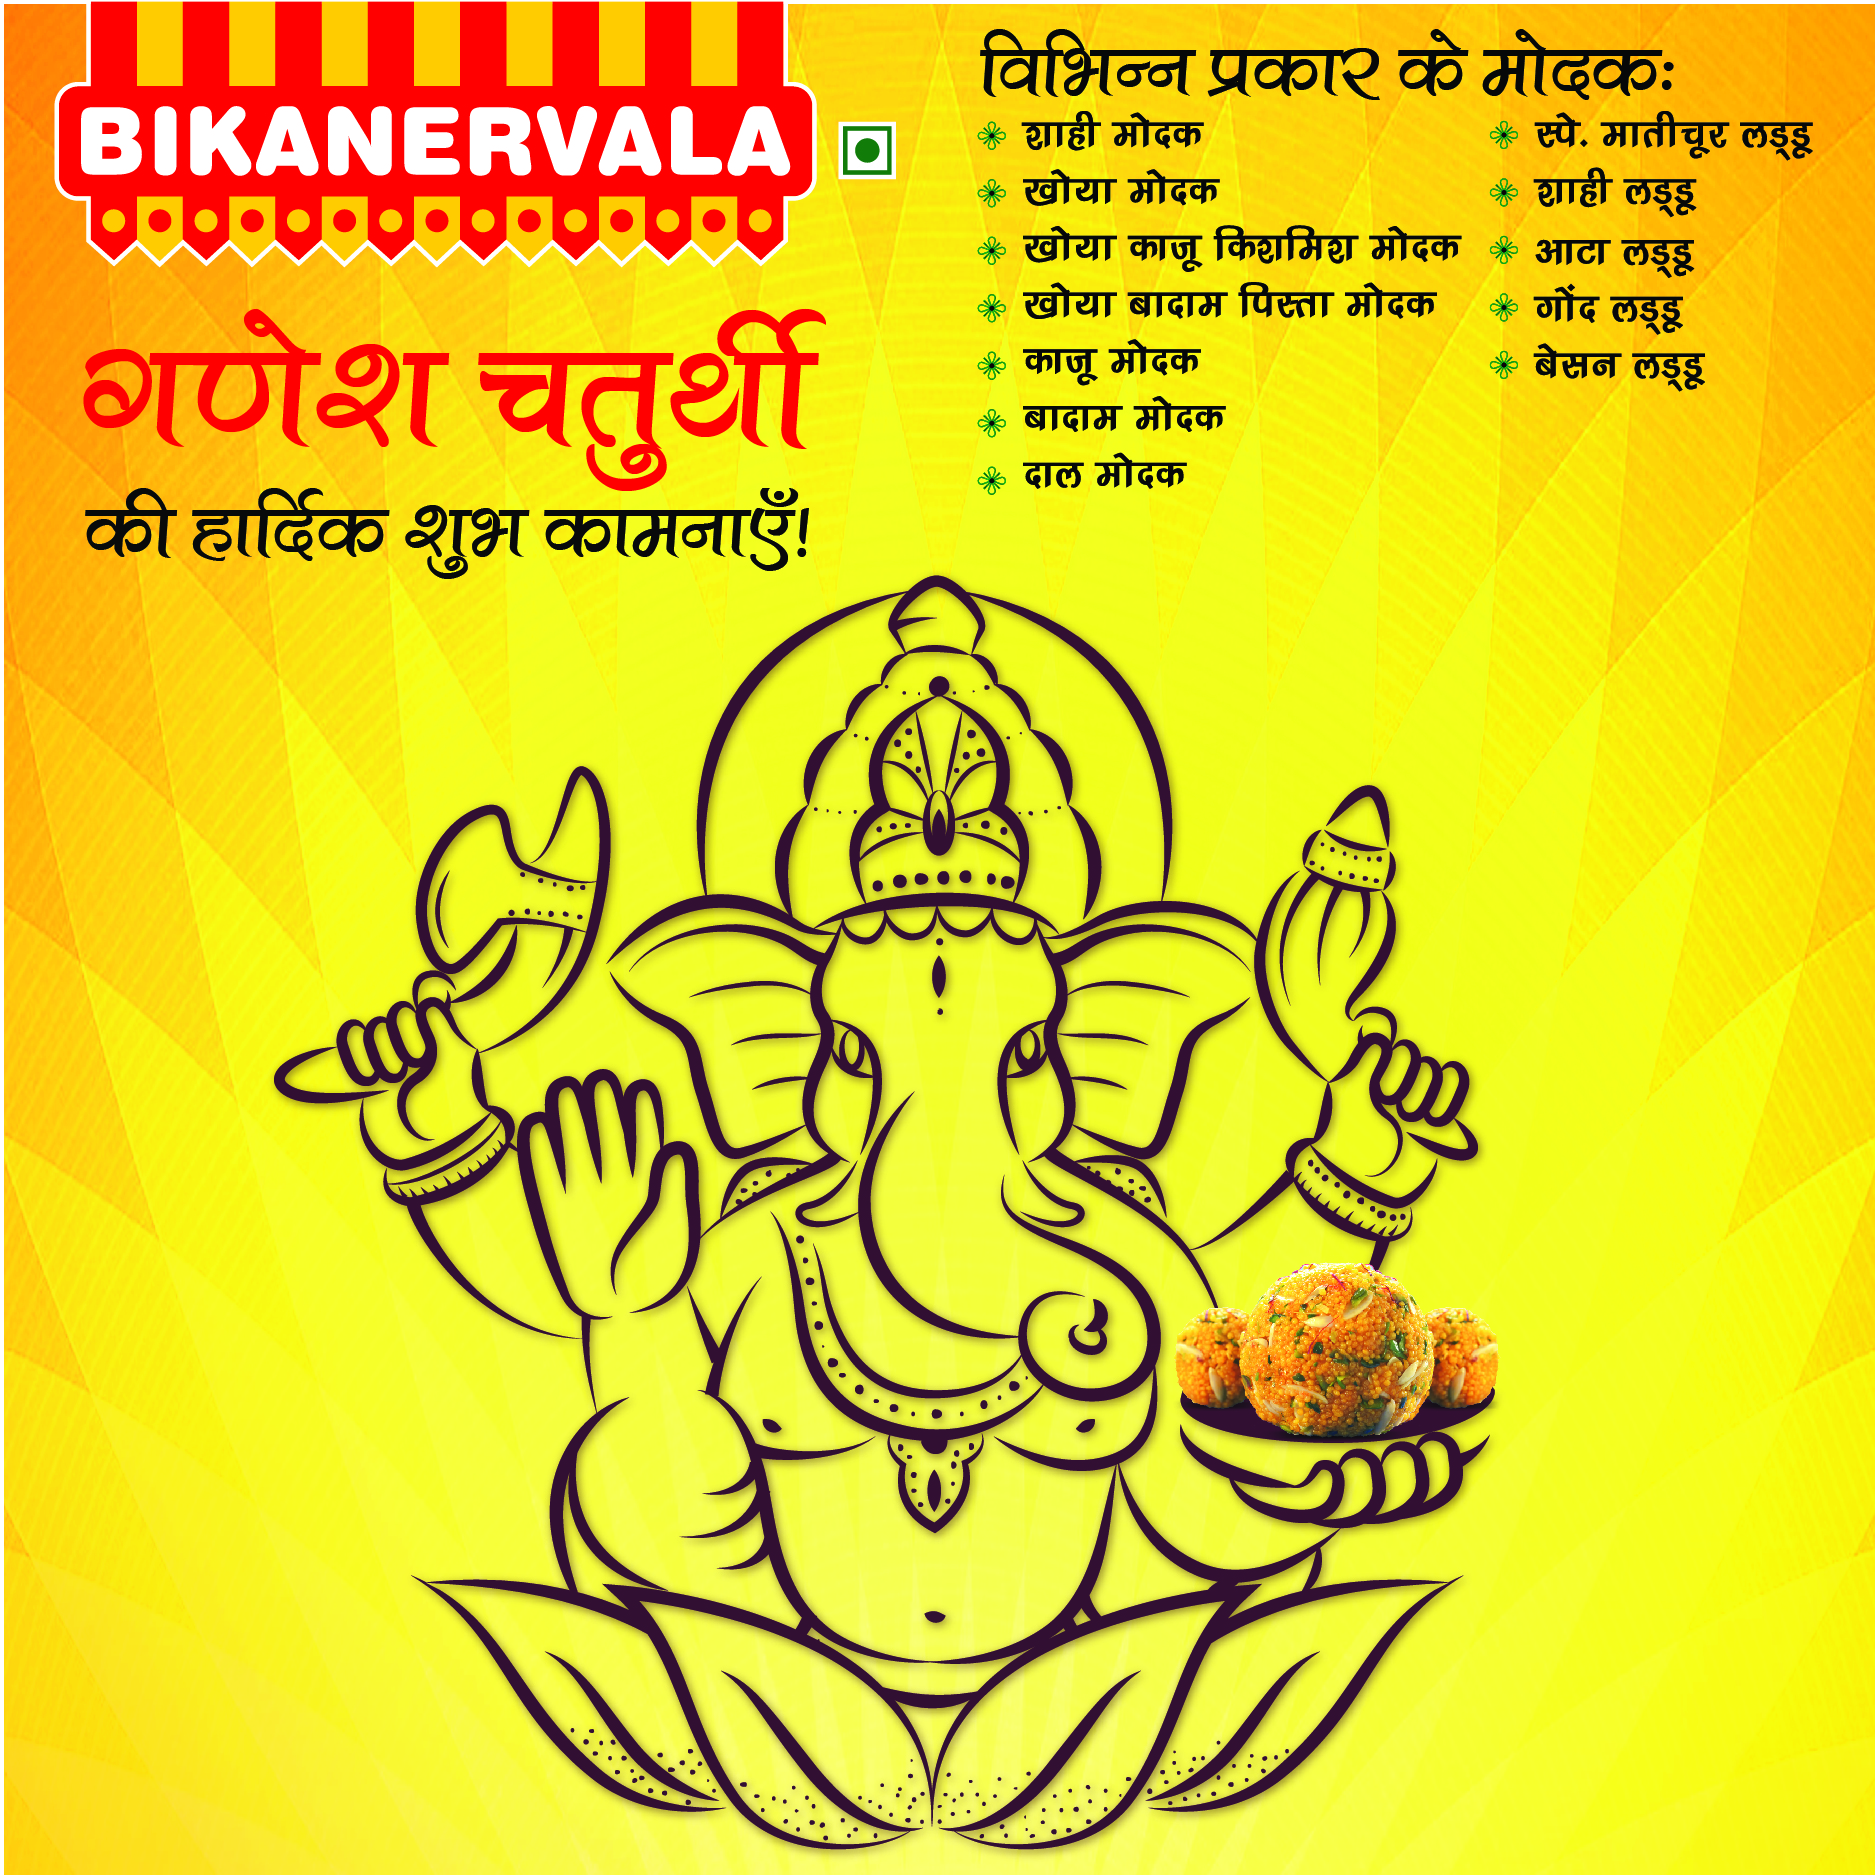 Bikanervala offers 12 exclusive modak this Ganesh Chaturthi